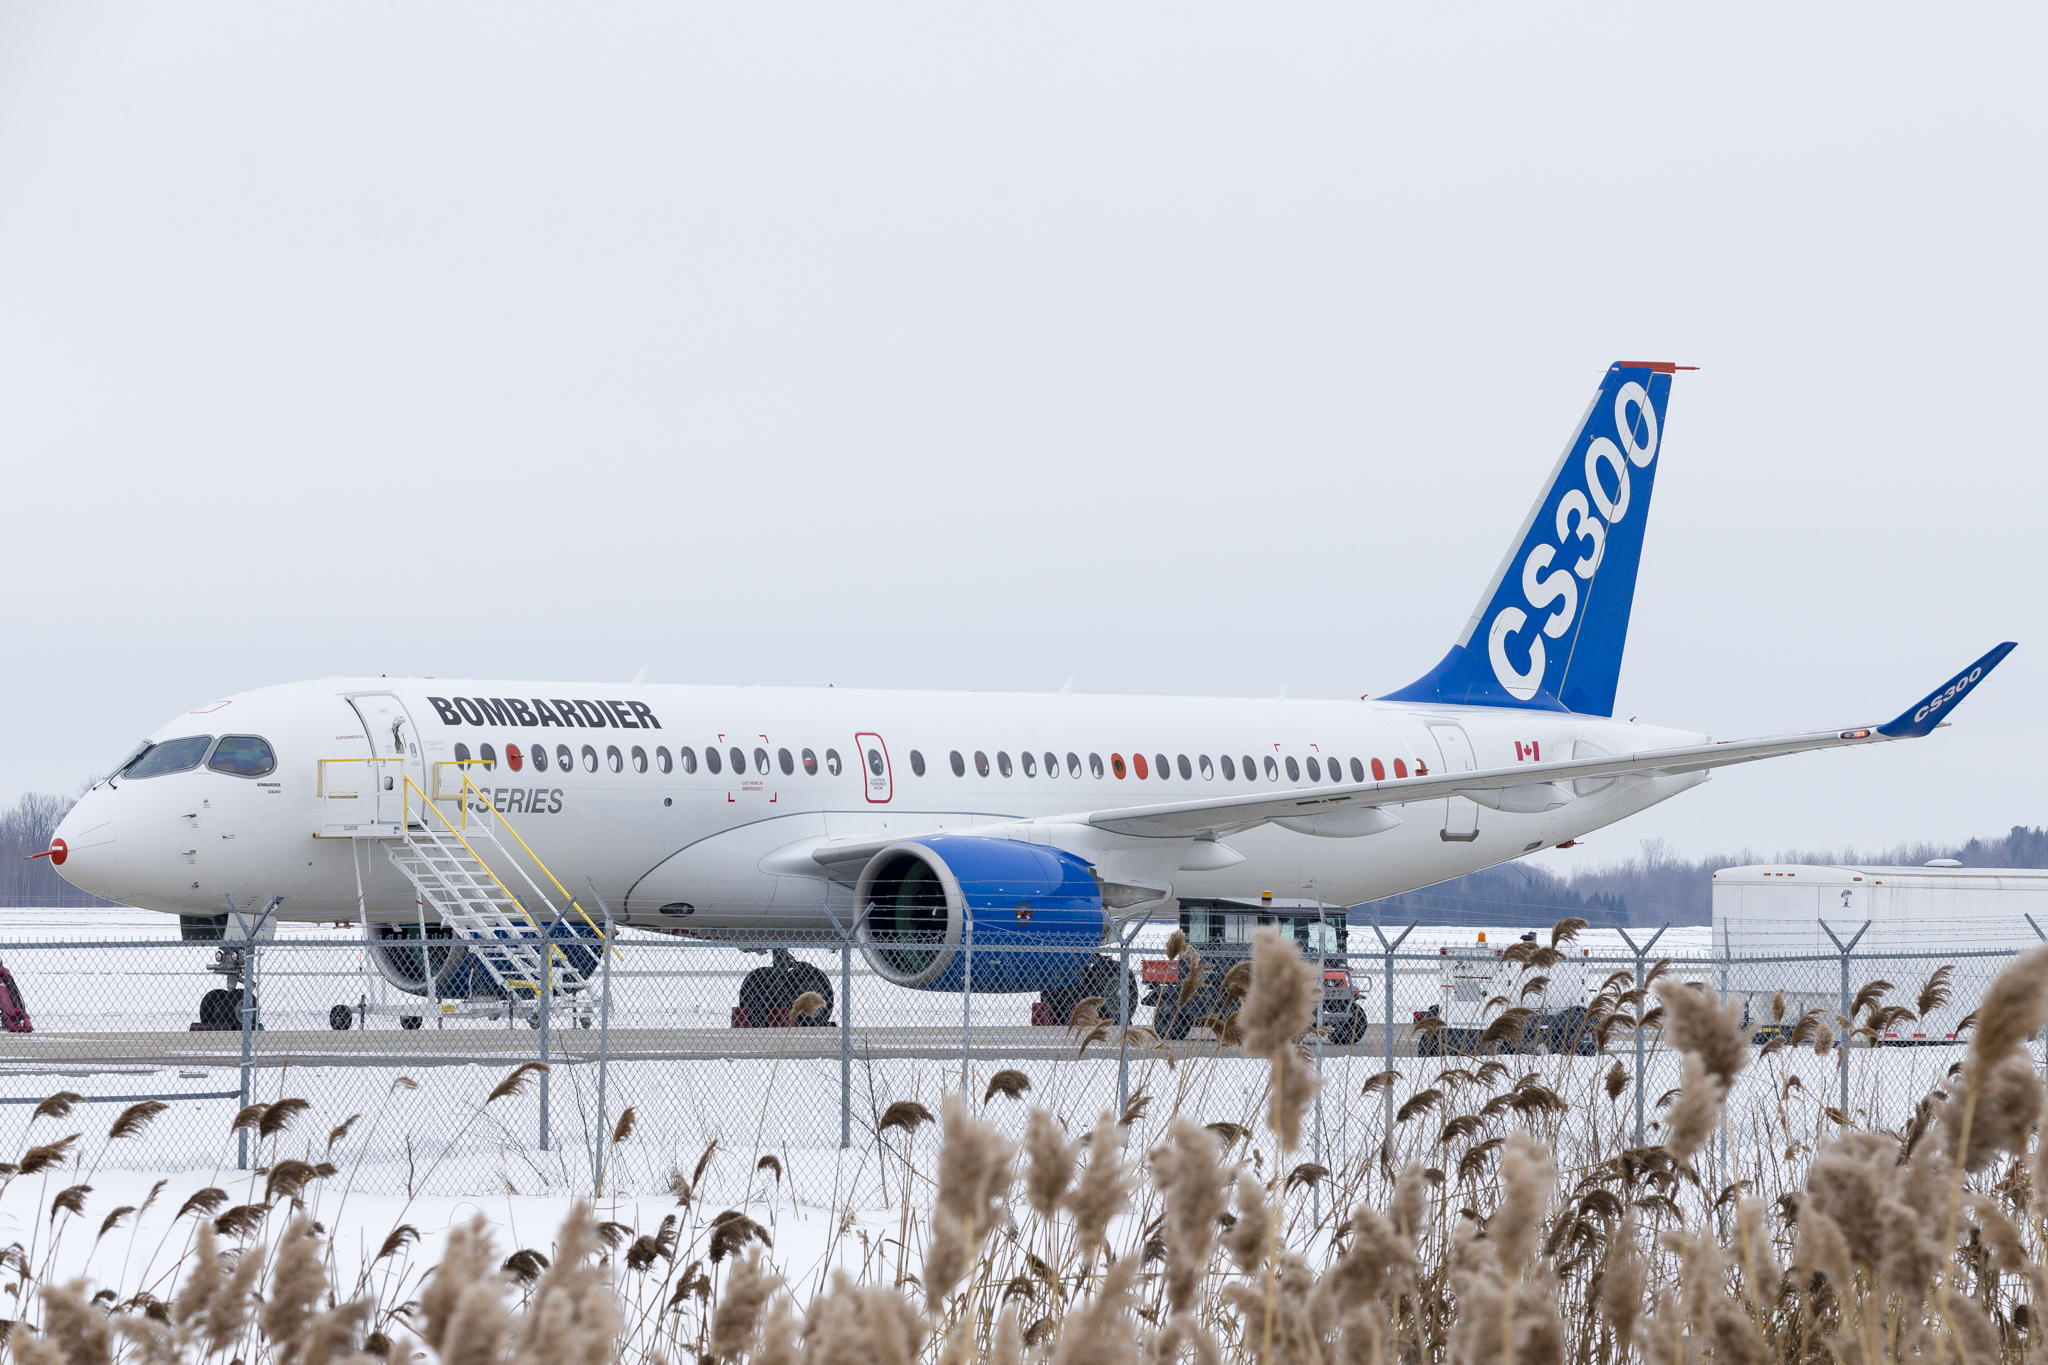 Bombardier cs300 analysis vs a319neo 737 7 leeham news and comment